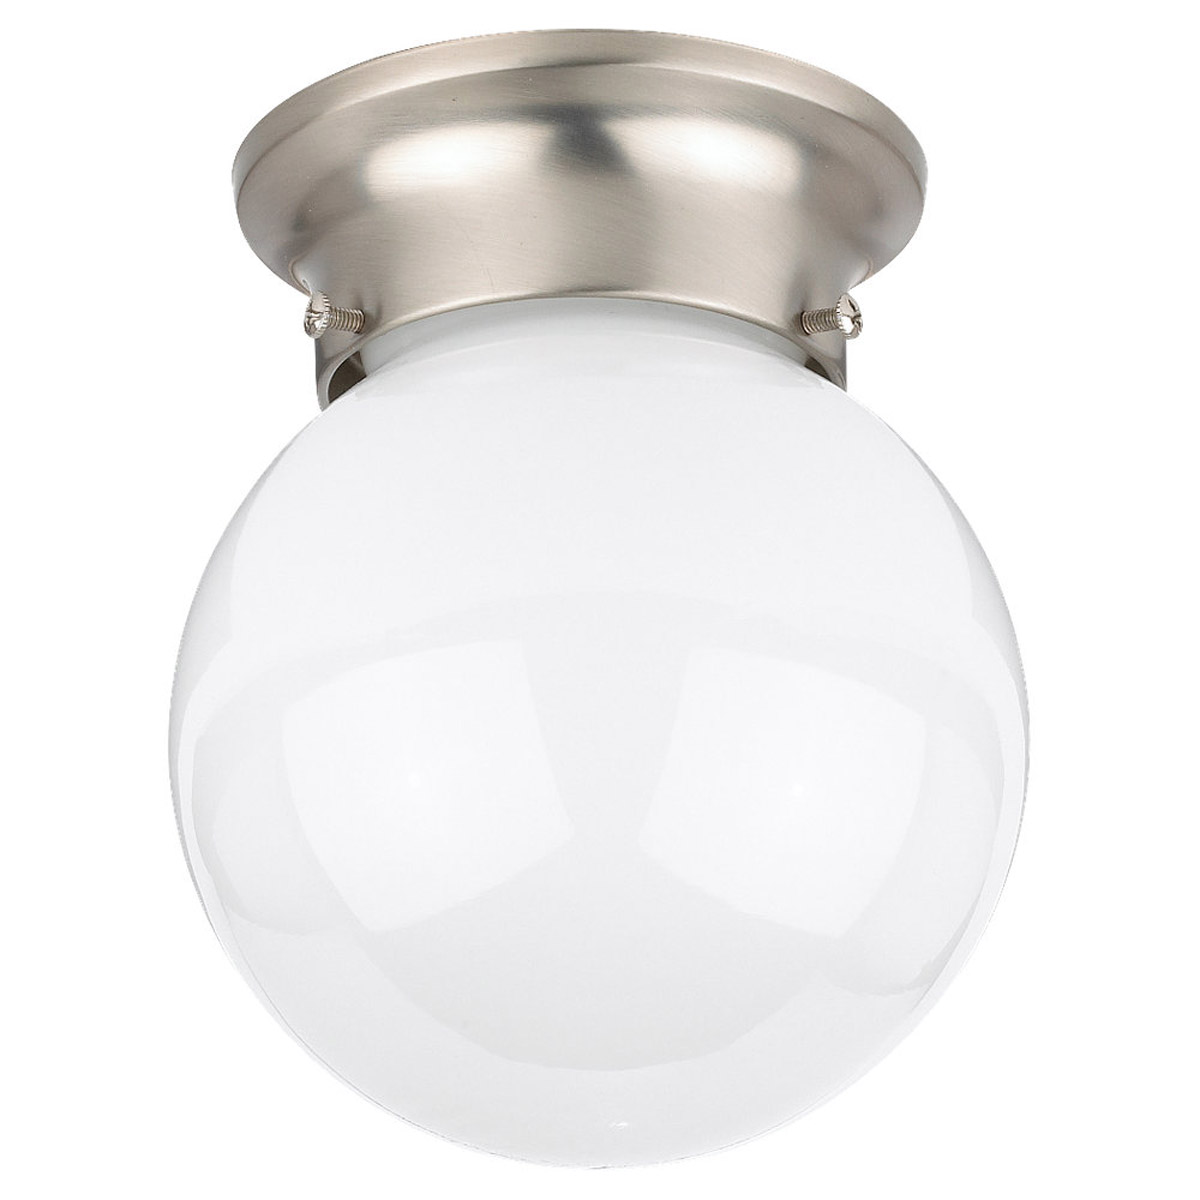 Sea Gull Lighting Tomkin 1 Light Flush Mount in Brushed Nickel 5366-962